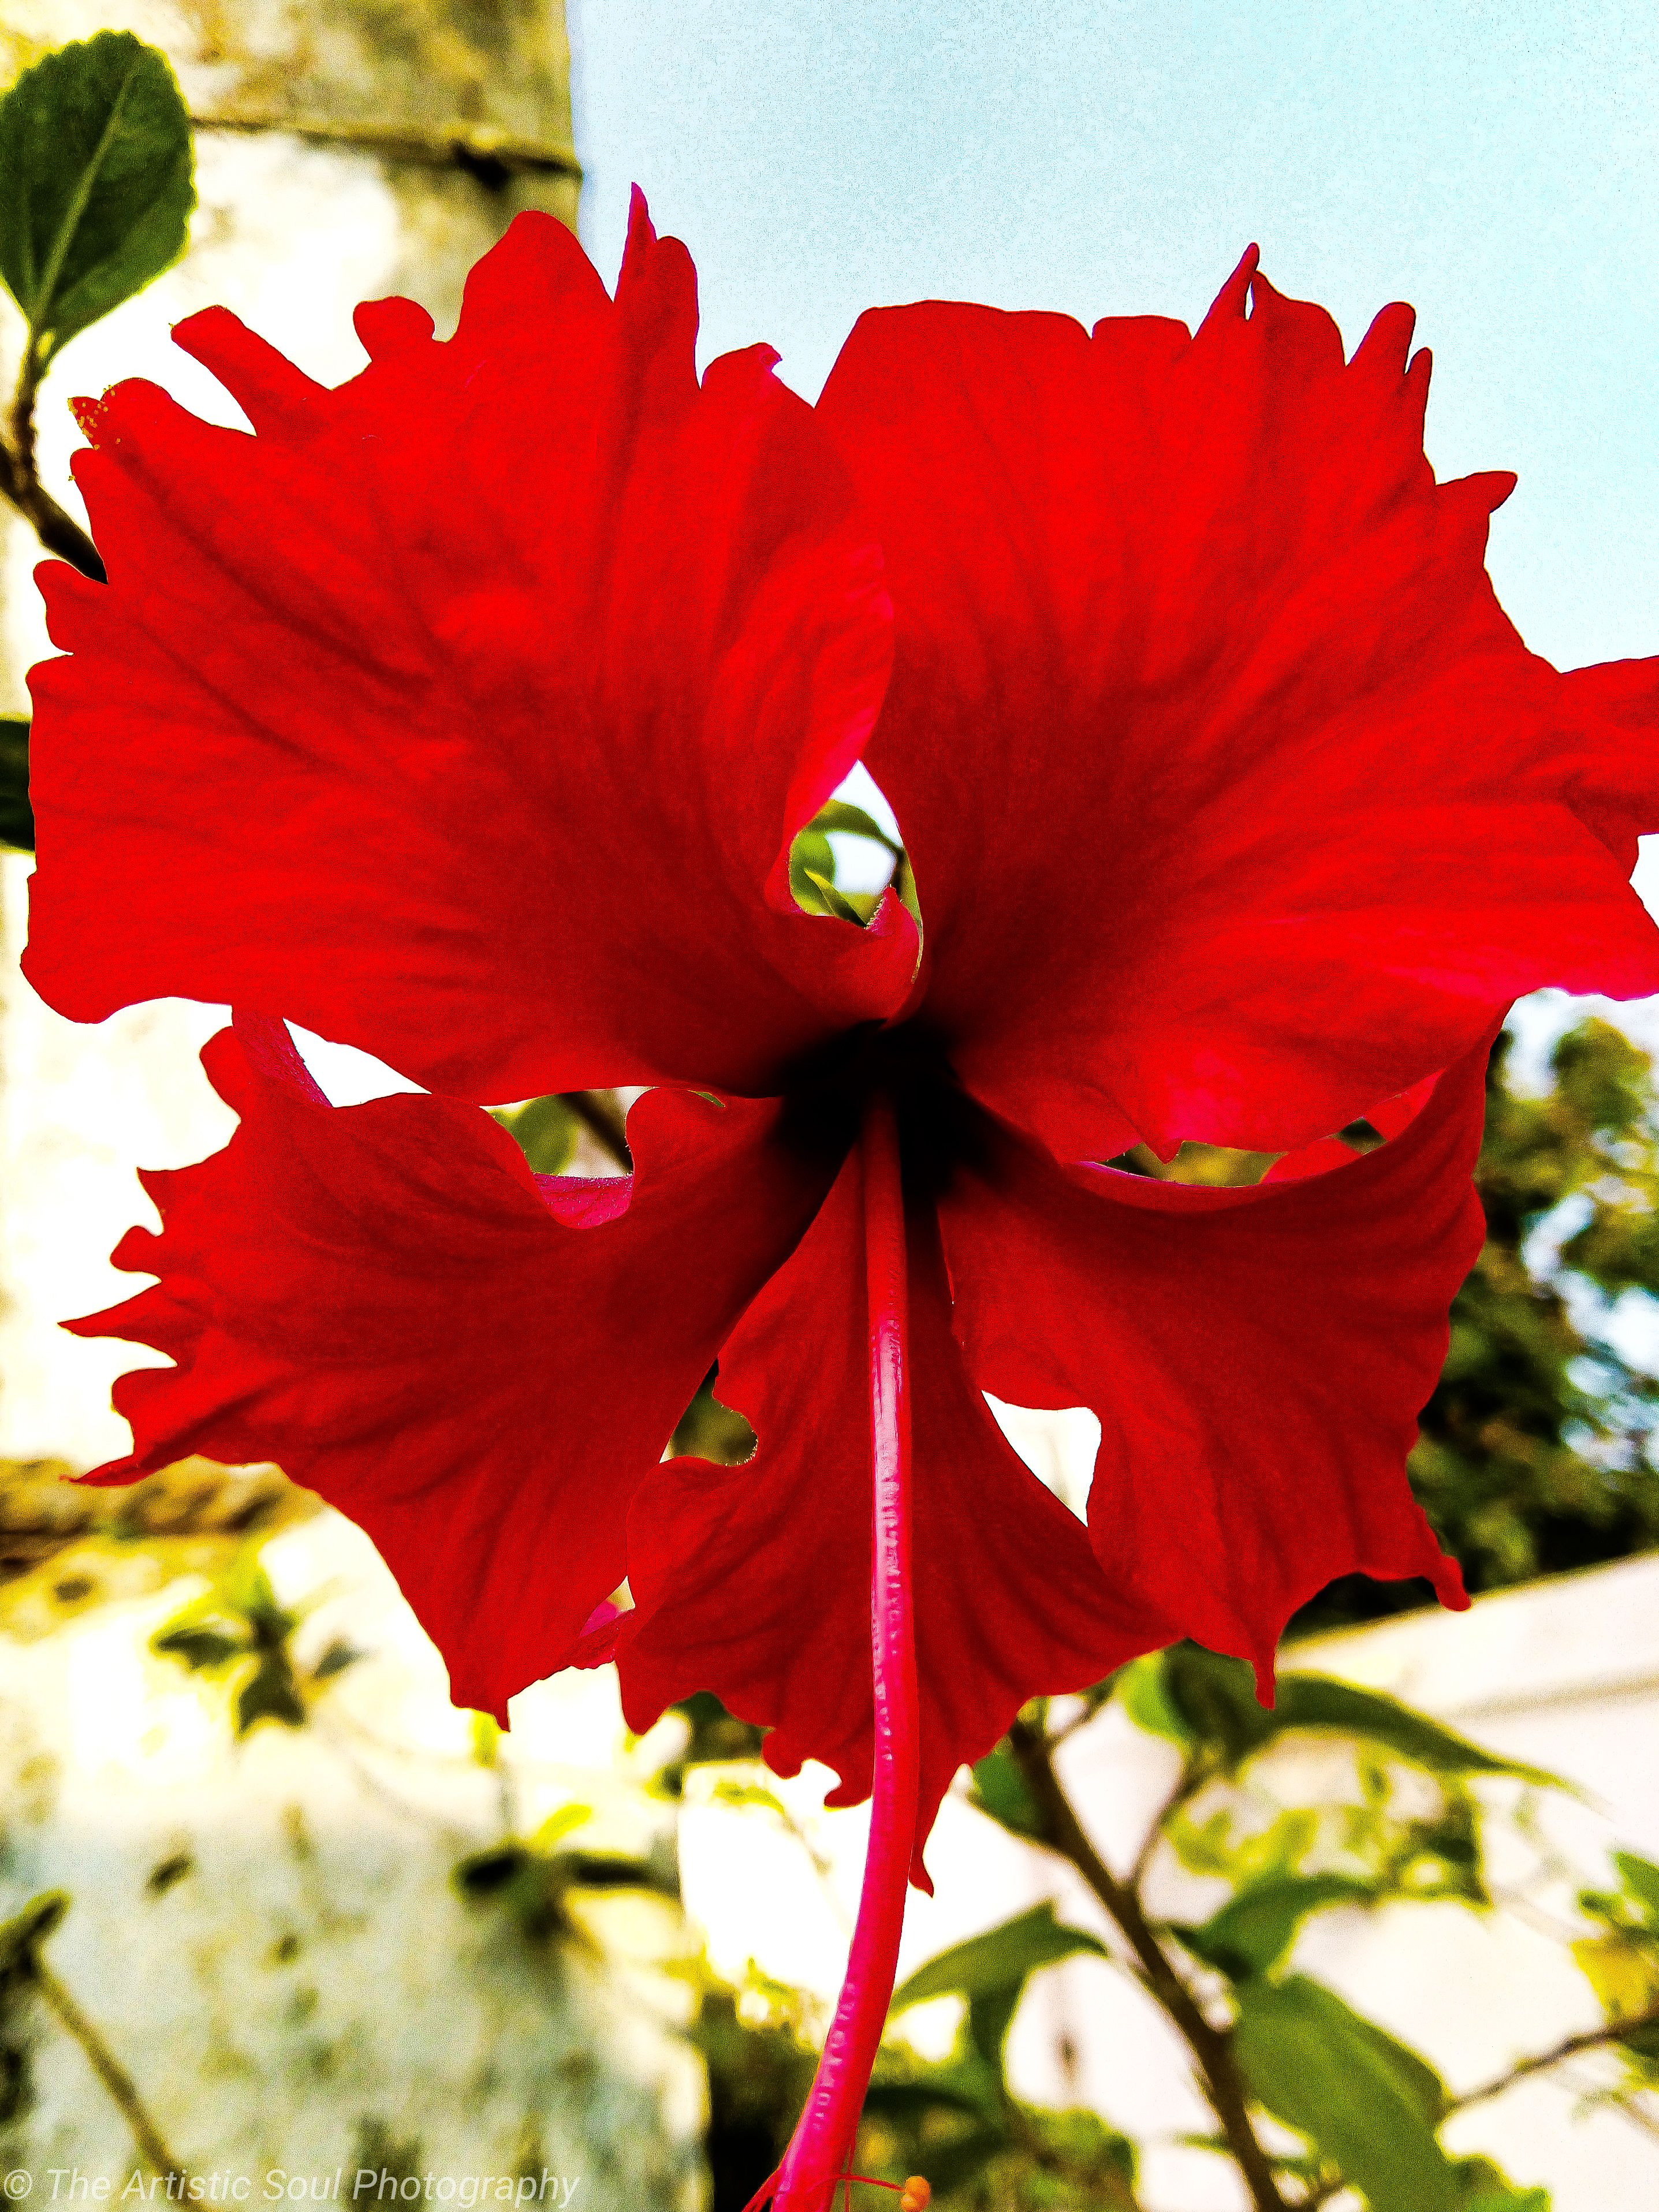 A Beautiful Red Hibiscus Flower Photography Inspiration Profilepicture Beachpicture Pictureideas Wallpa In 2020 Flowers Beautiful Flowers Garden Hibiscus Flowers